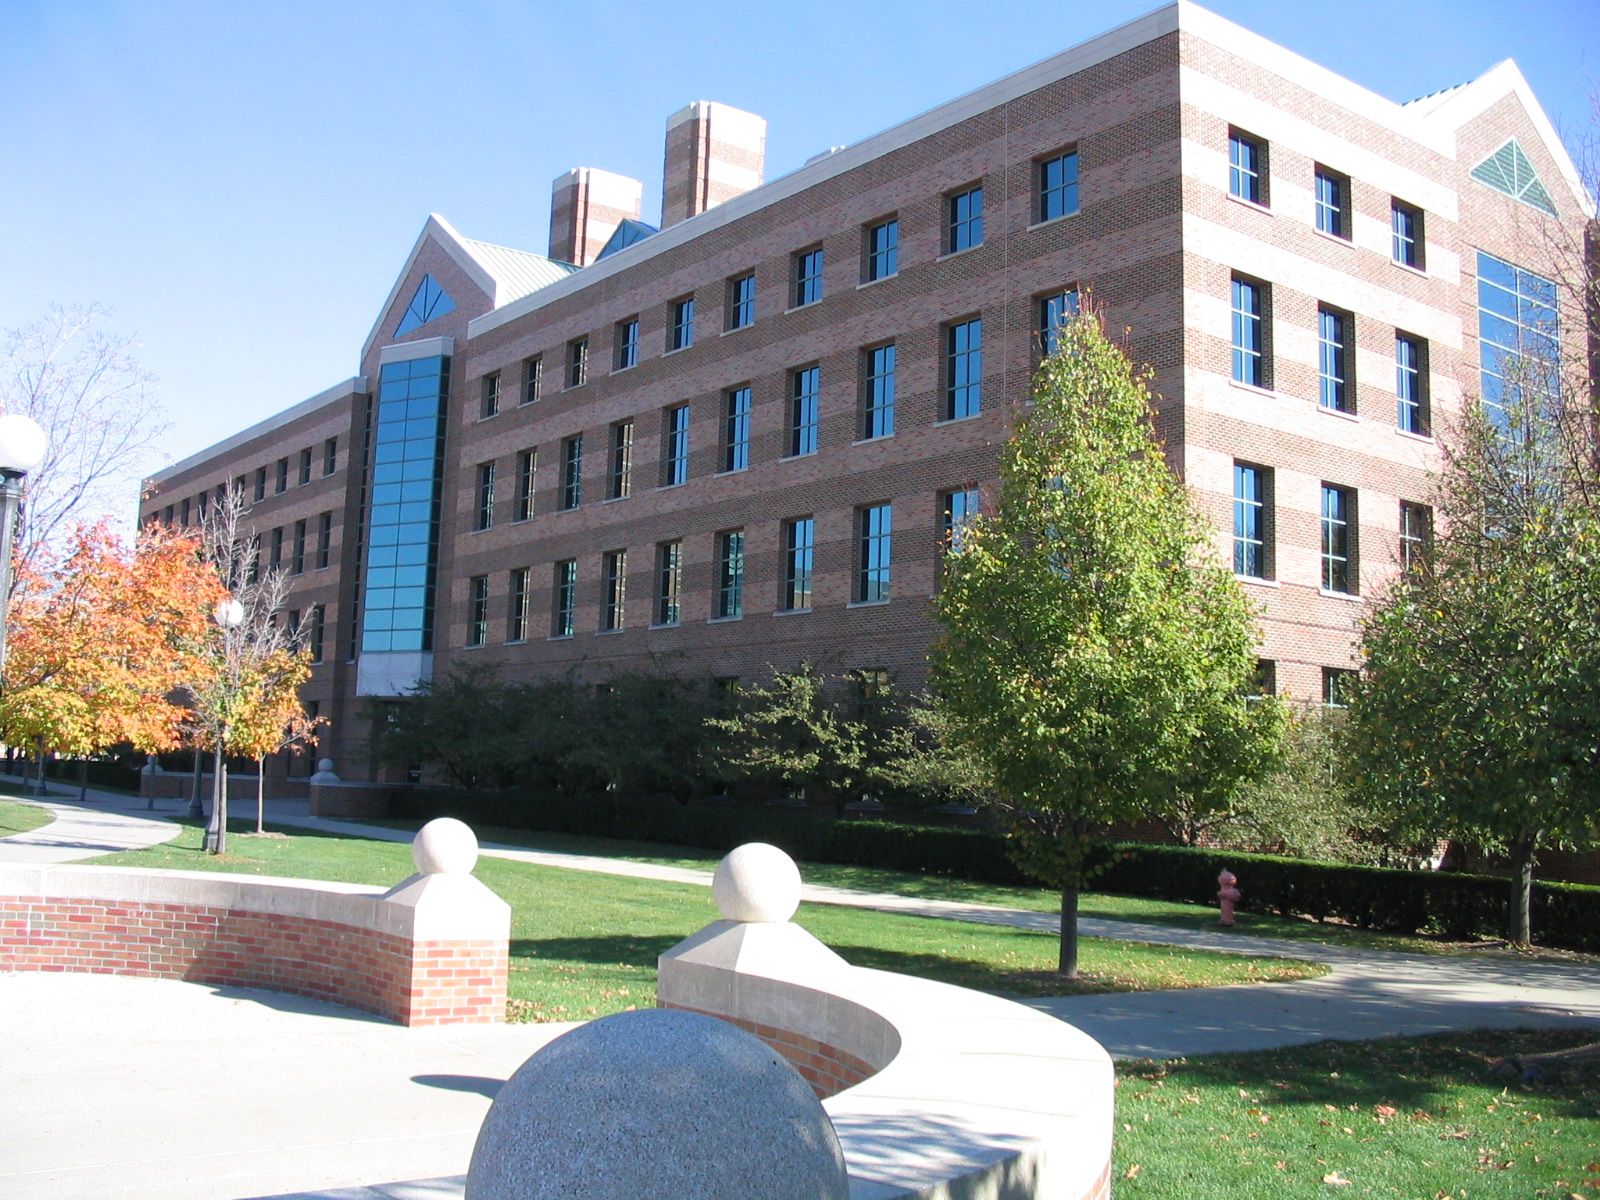 image of University of Illinois at Urbana–Champaign